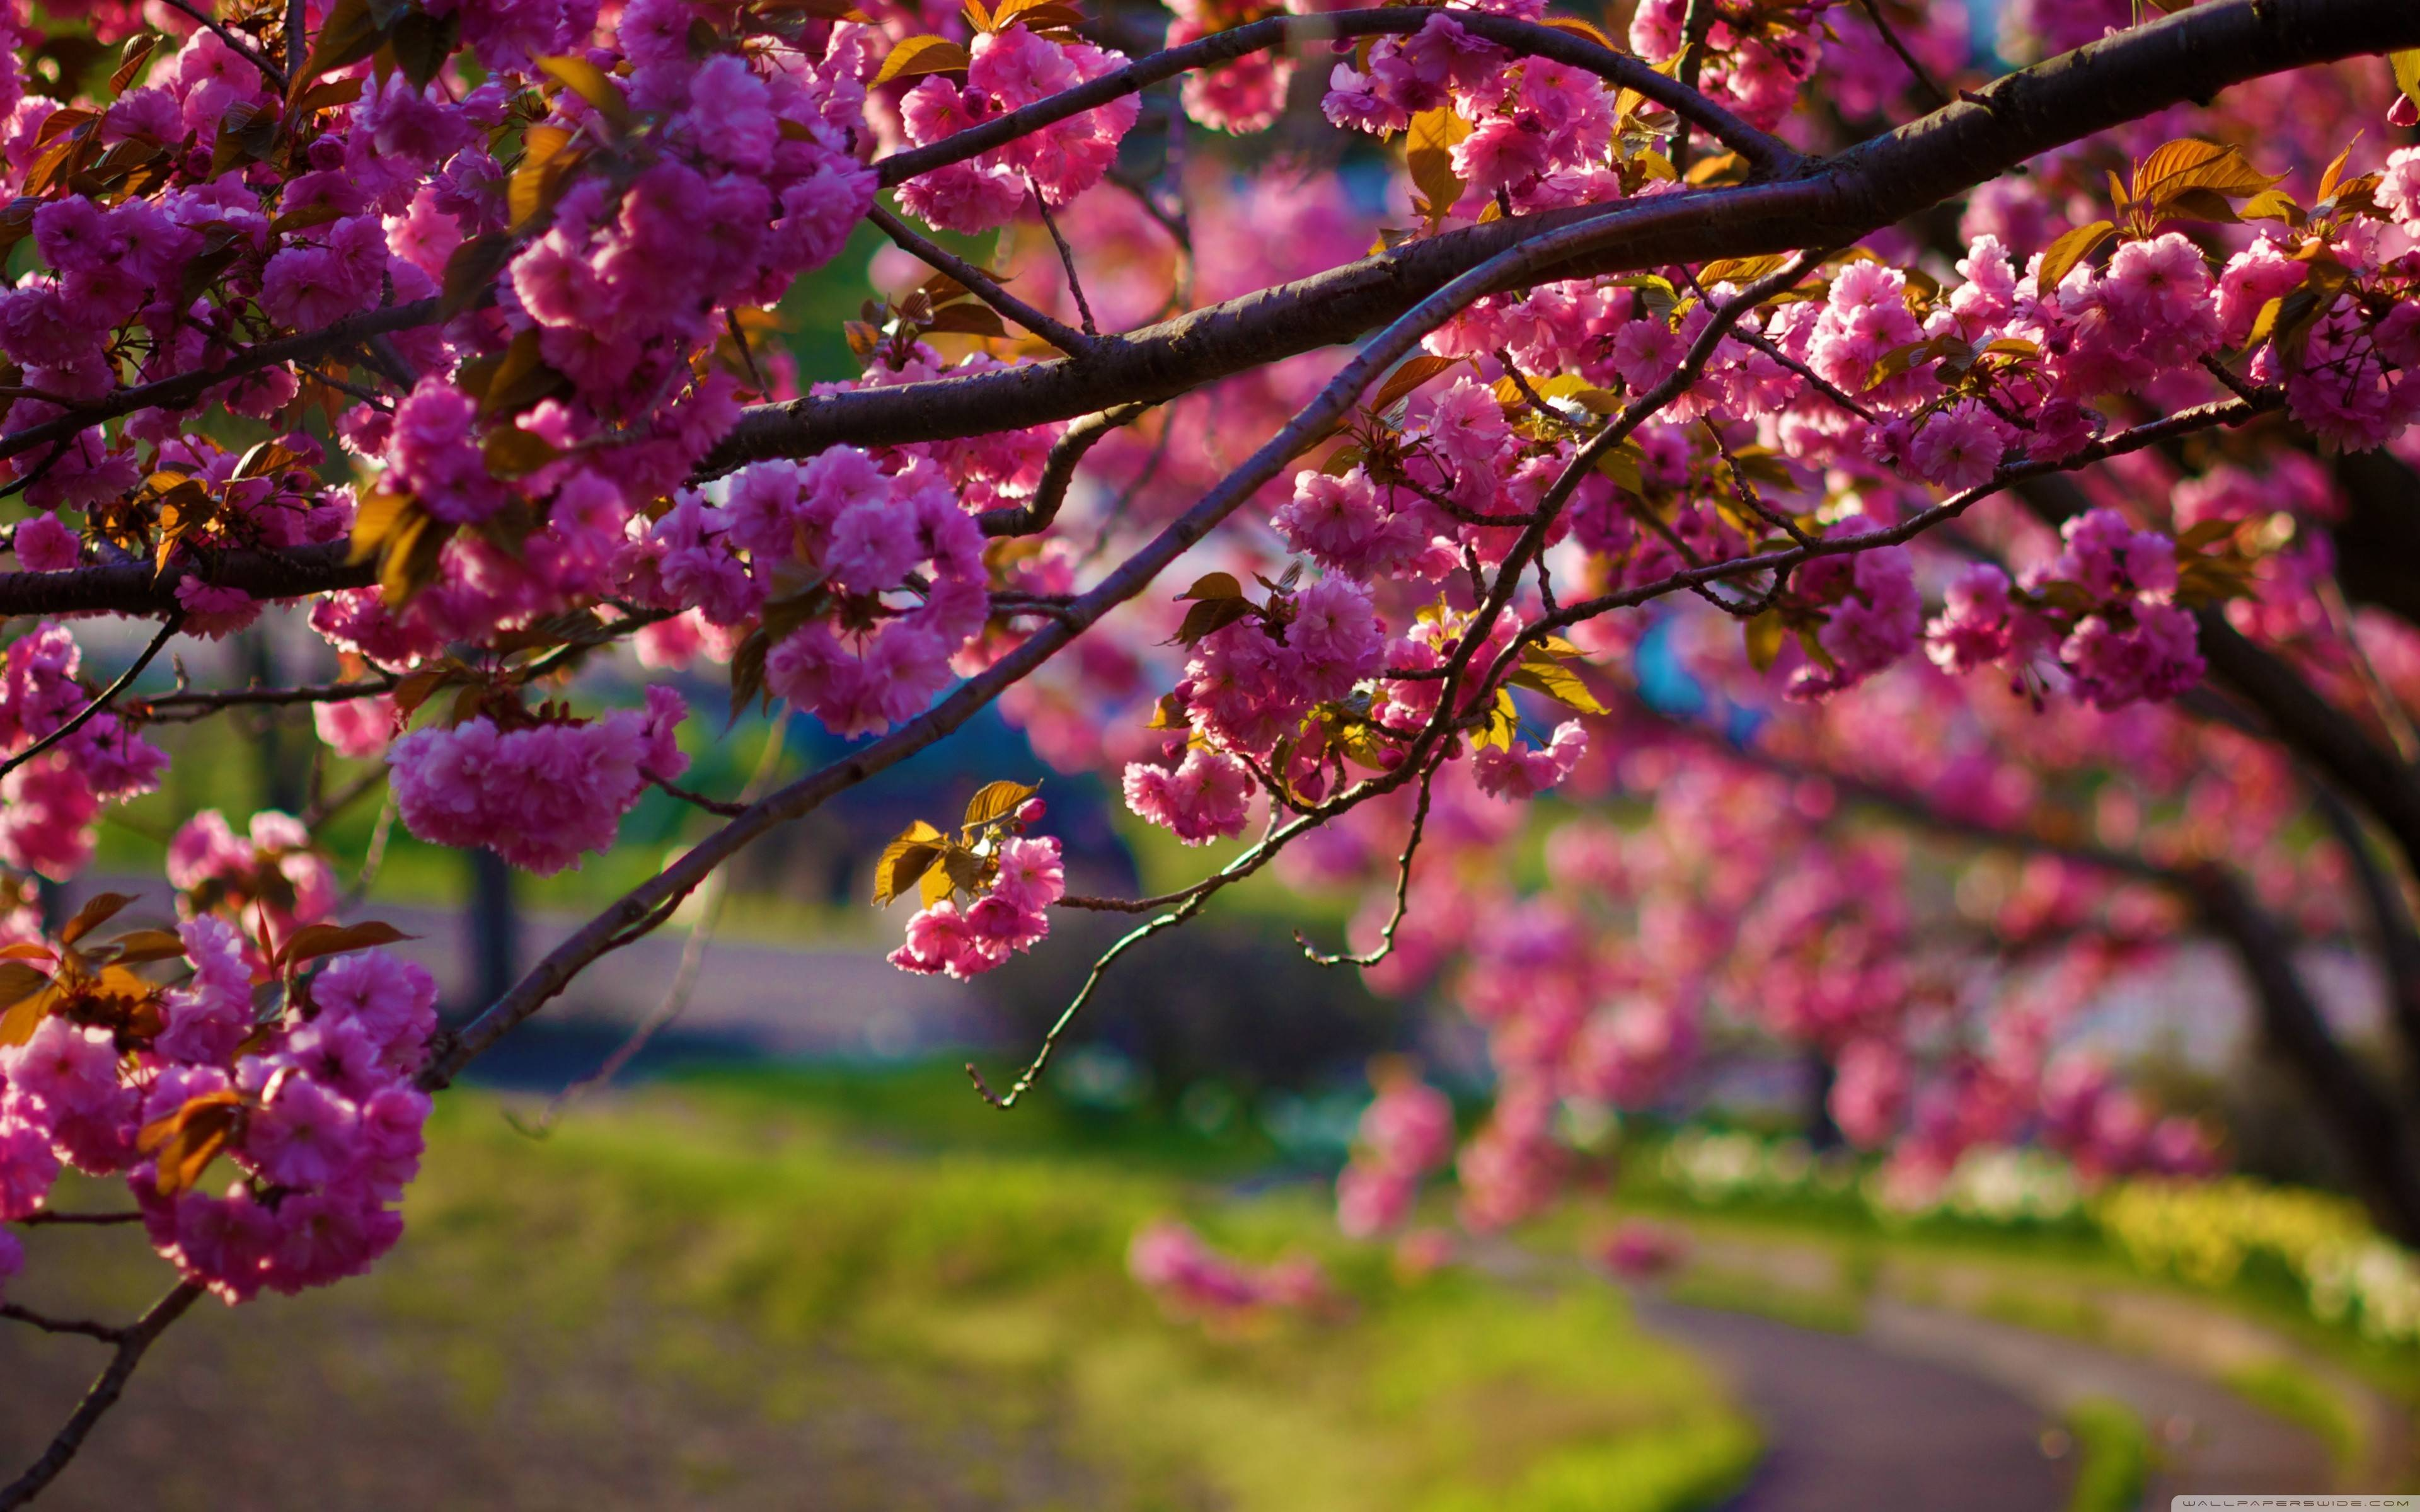 spring nature wallpaper - photo #1